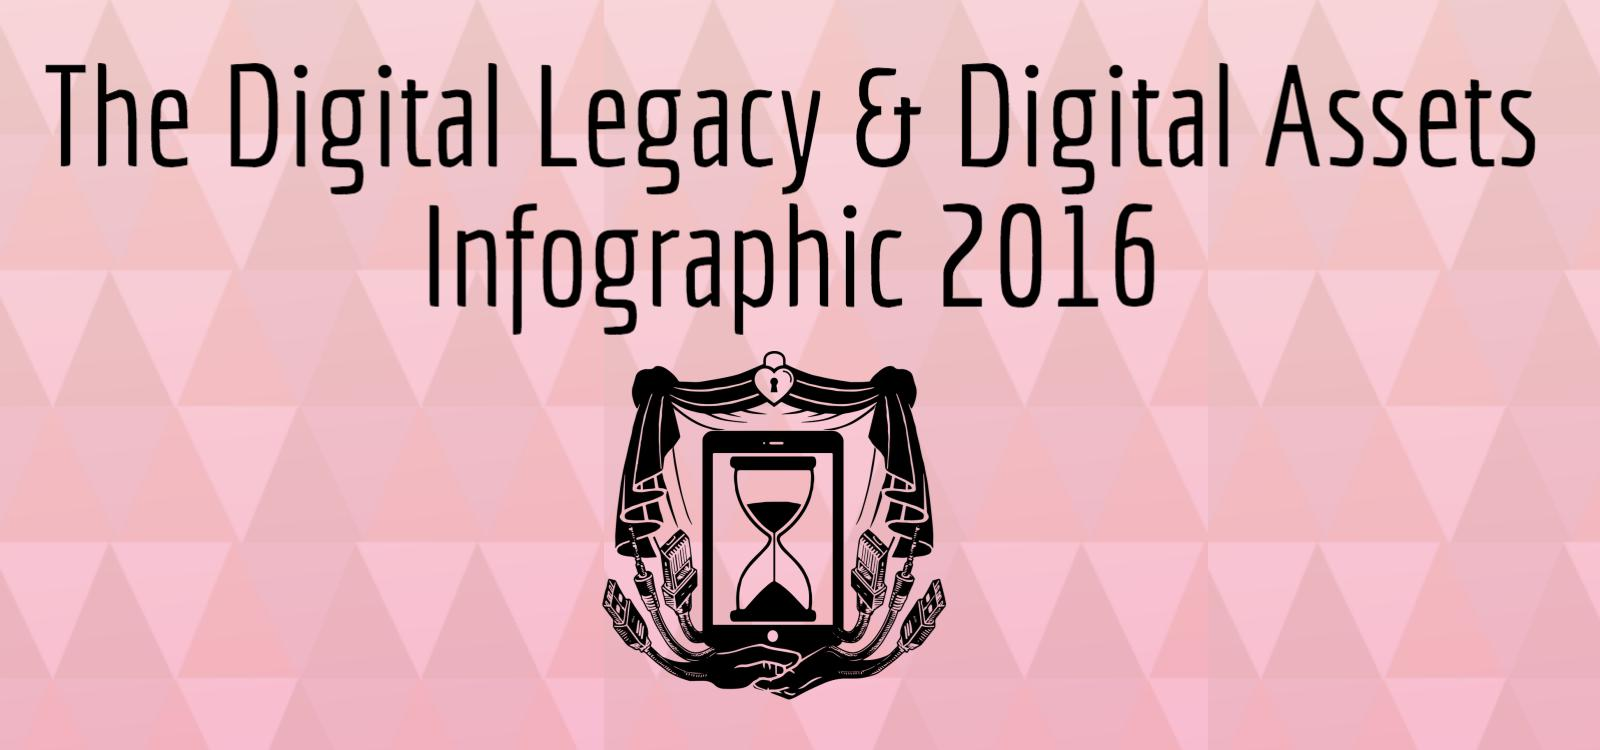 Digital Legacy Infographic